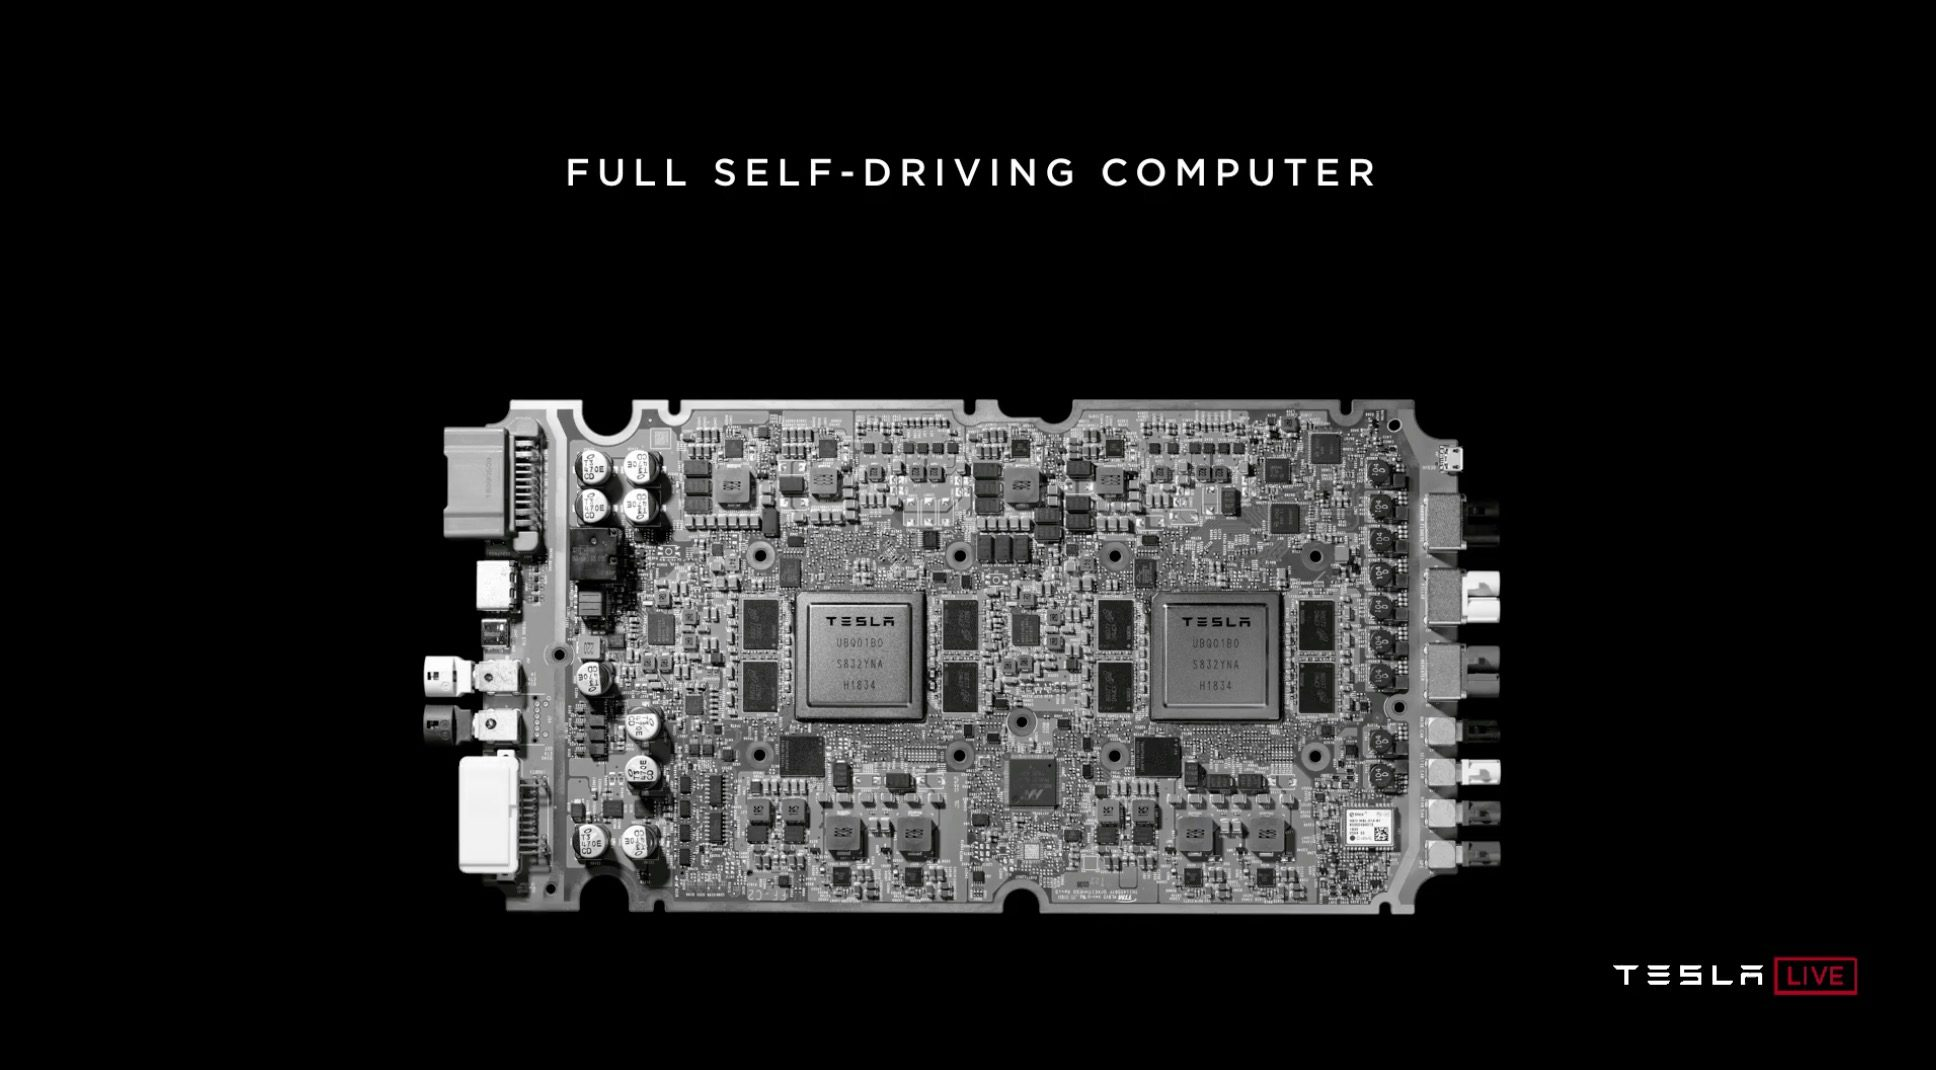 Tesla Full Self-Driving